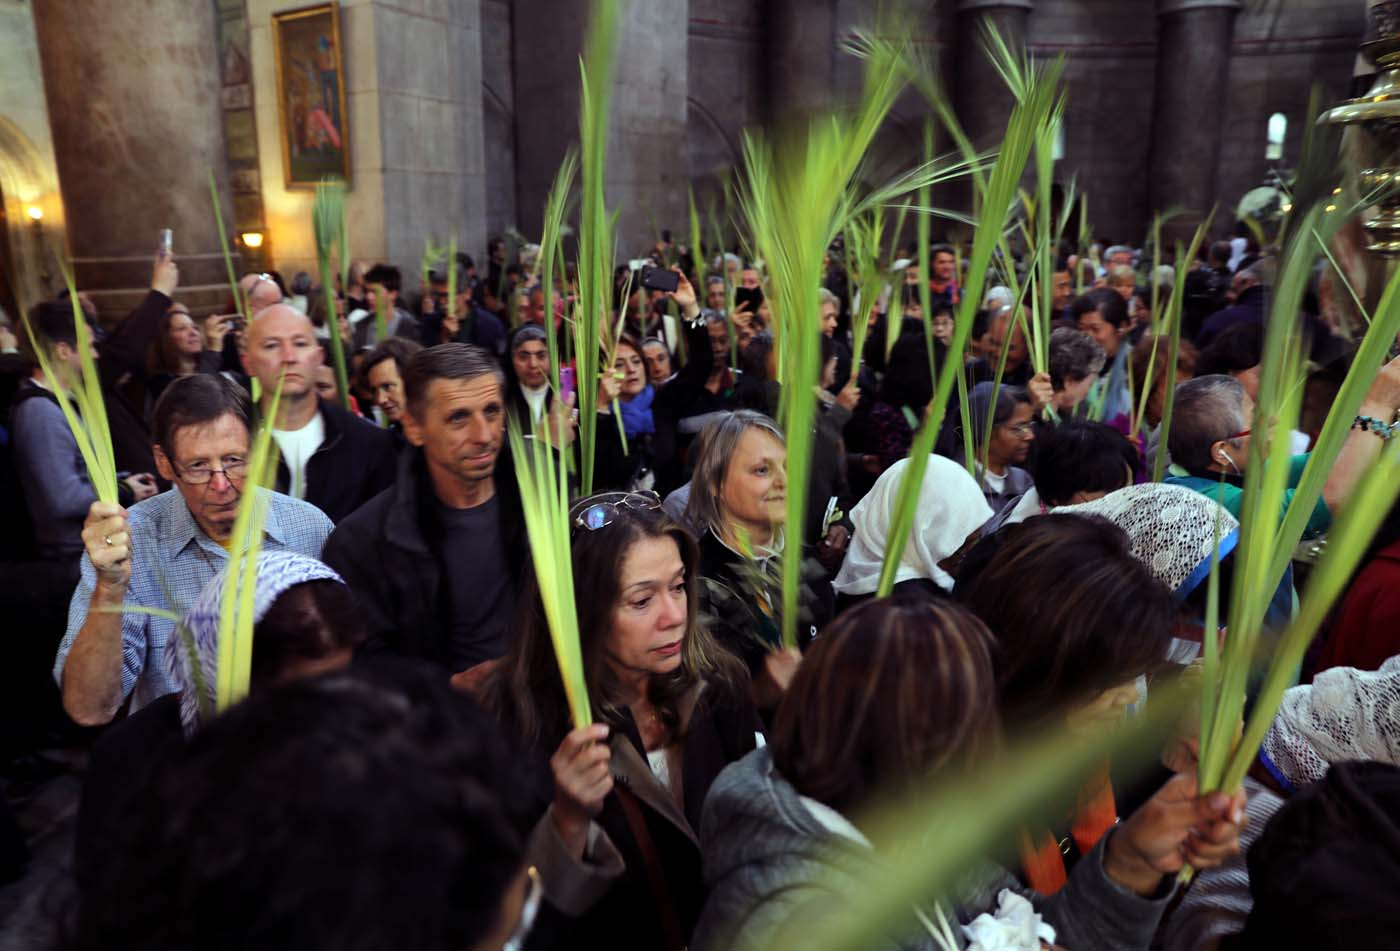 Christian worshippers take part in a Palm Sunday ceremony in the Church of the Holy Sepulchre in Jerusalem's Old City April 9, 2017. REUTERS/Ammar Awad